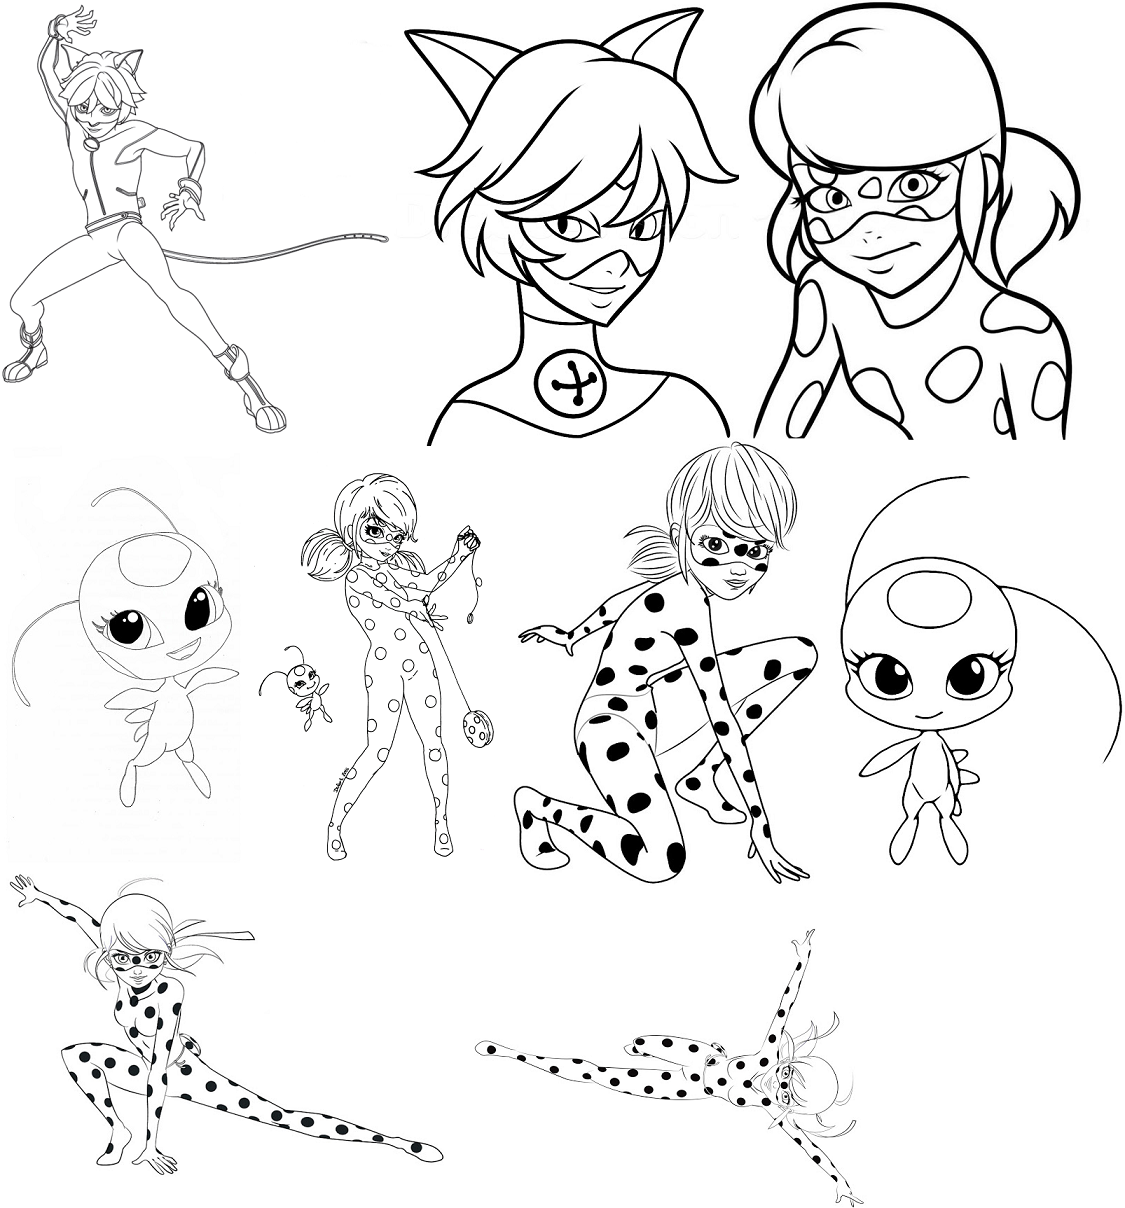 Miraculous Lady bug e Cat noir